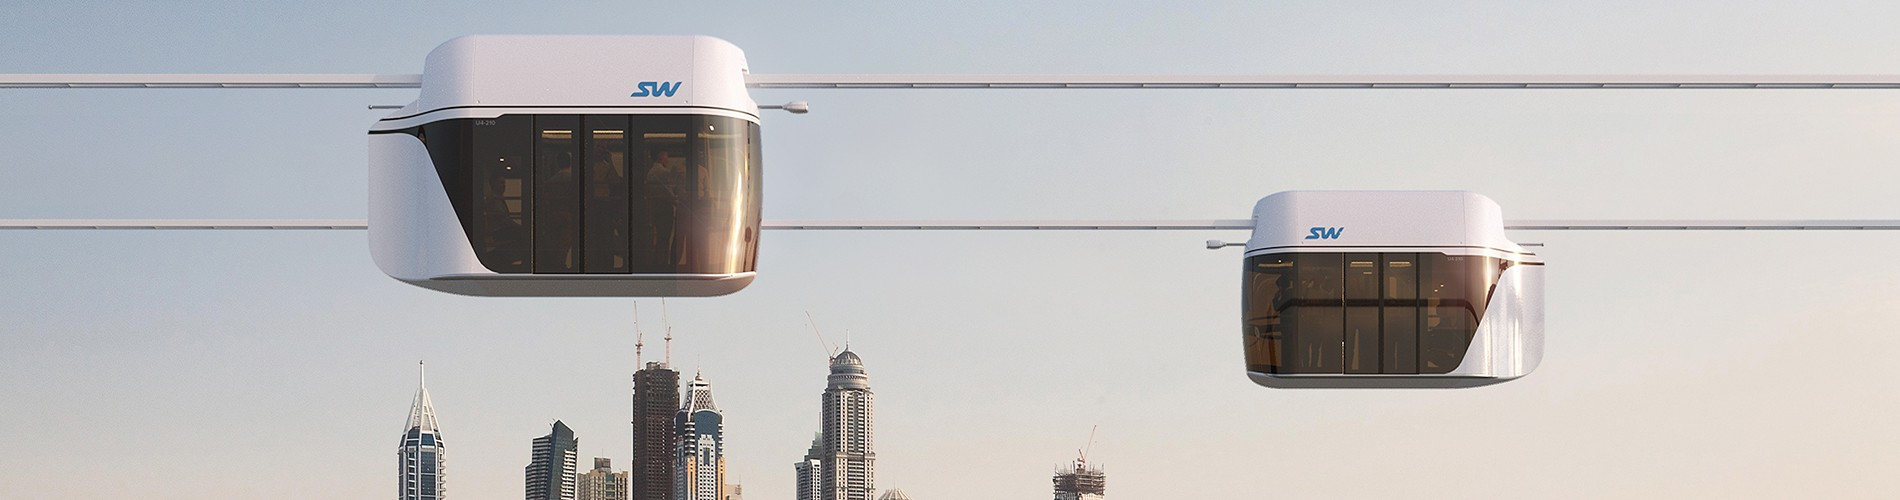 German media on the fifth transport system in Dubai